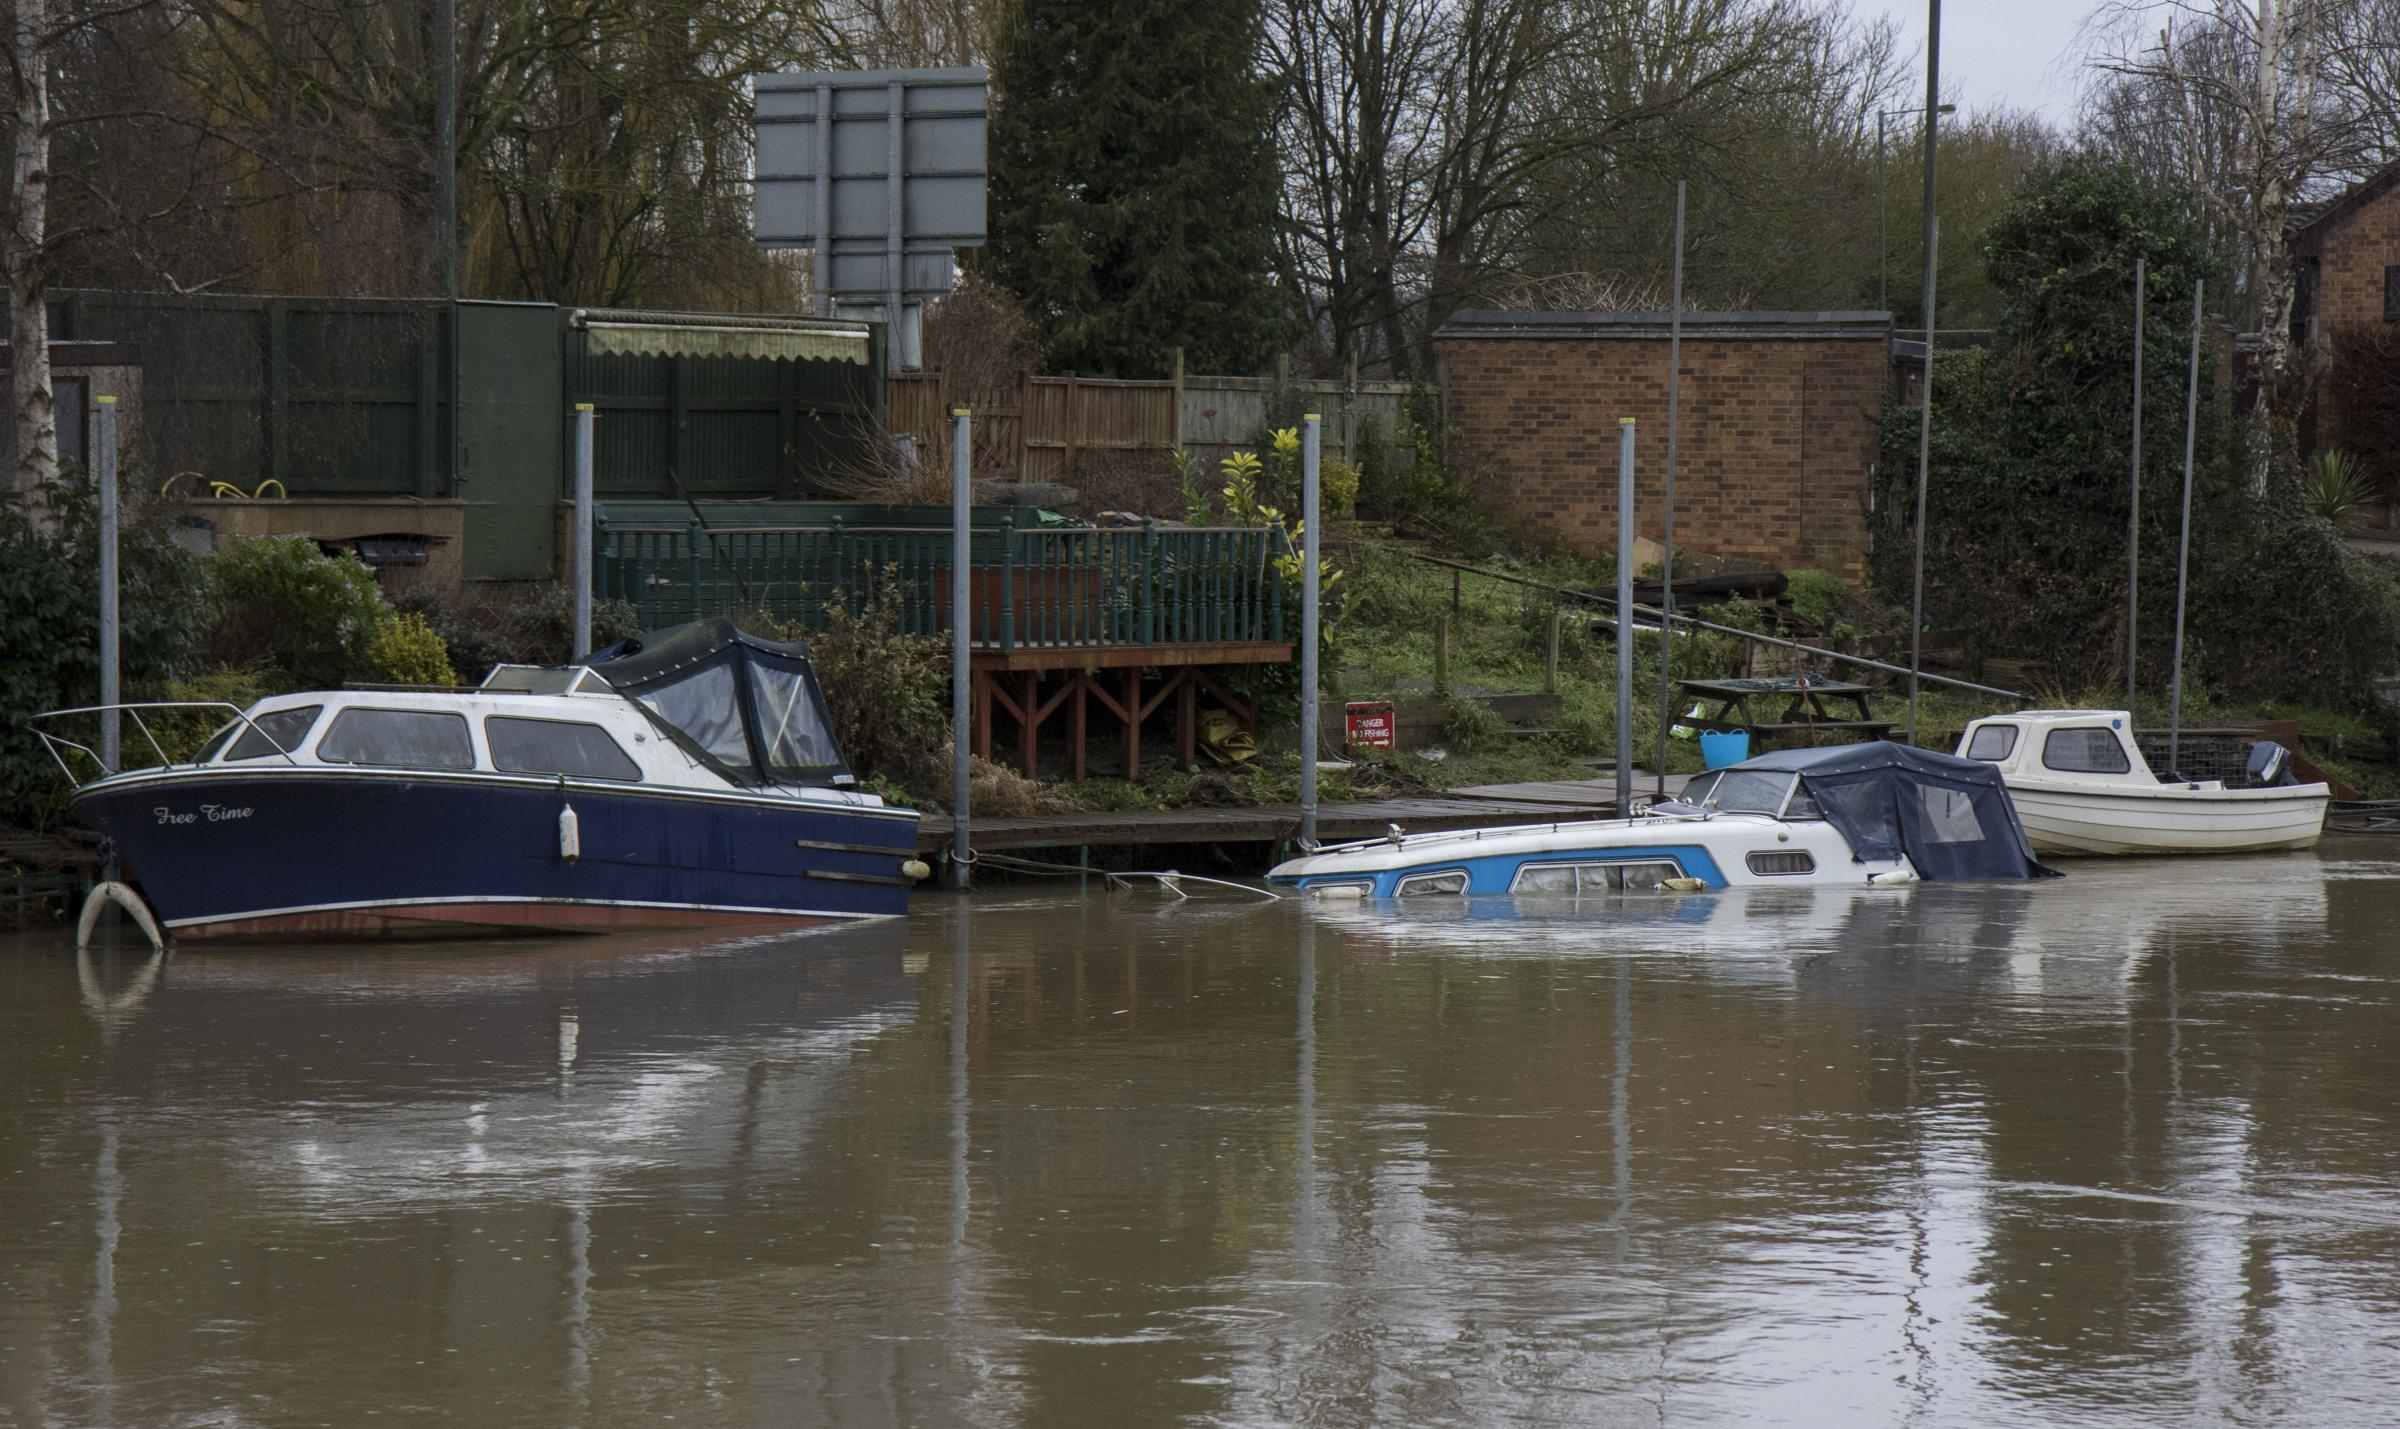 RISING: A picture of a submerged boat in the River Avon in Evesham.